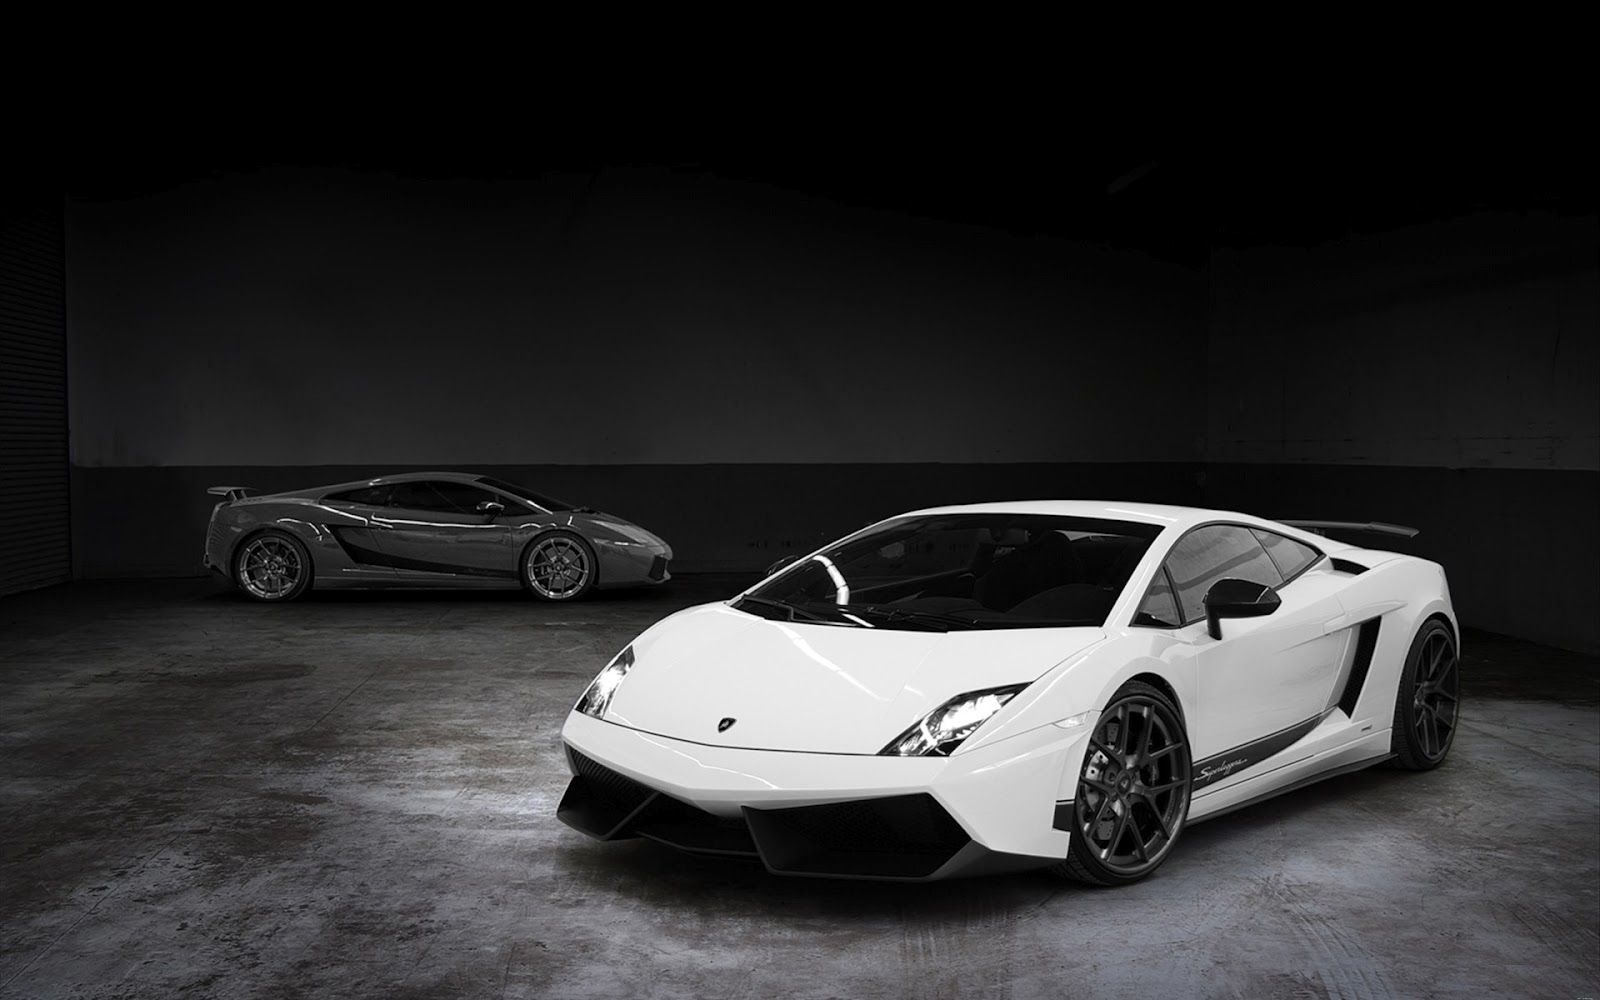 Cars Wallpaper Black And White Best Cars Wallpapers